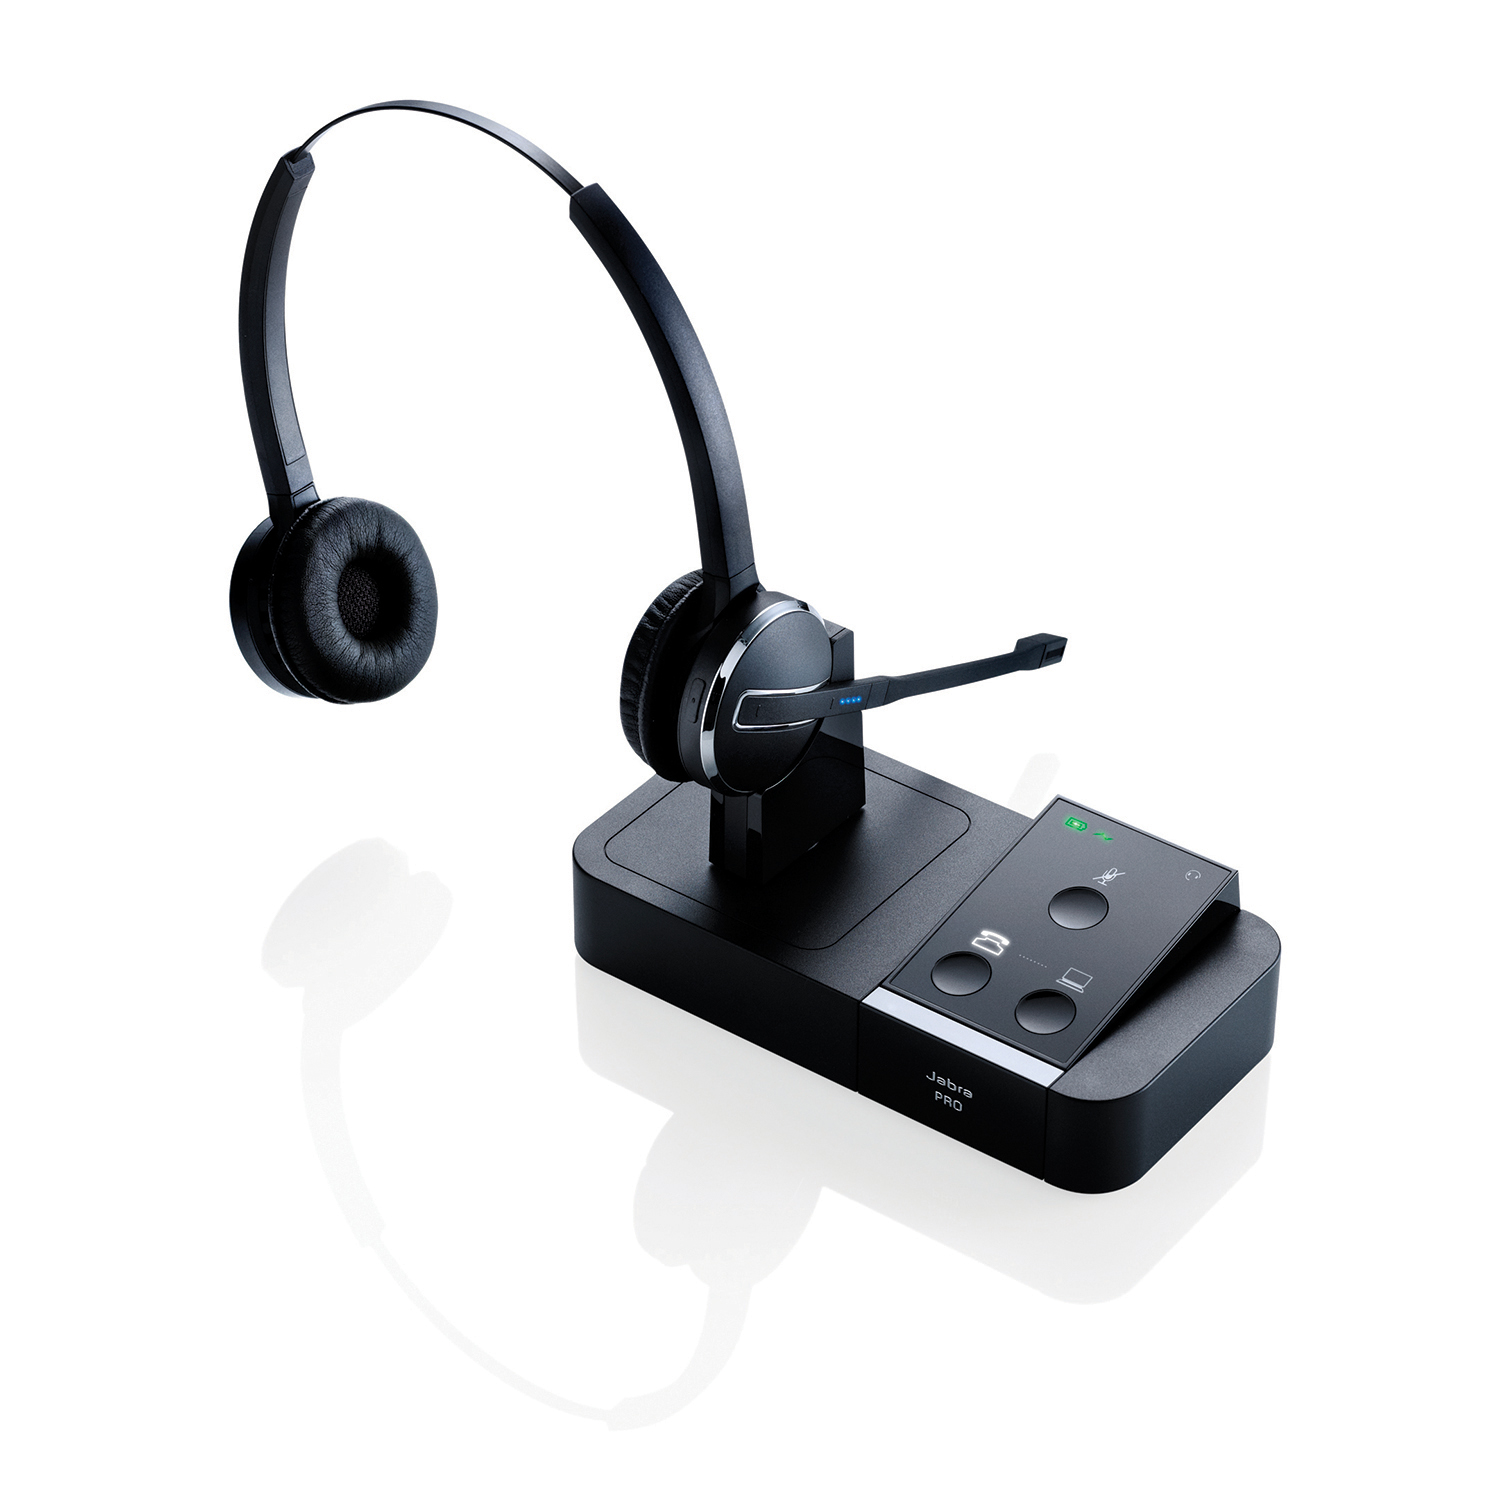 GN Jabra Pro 9450 Duo Flex Binaural DECT Wireless Headset